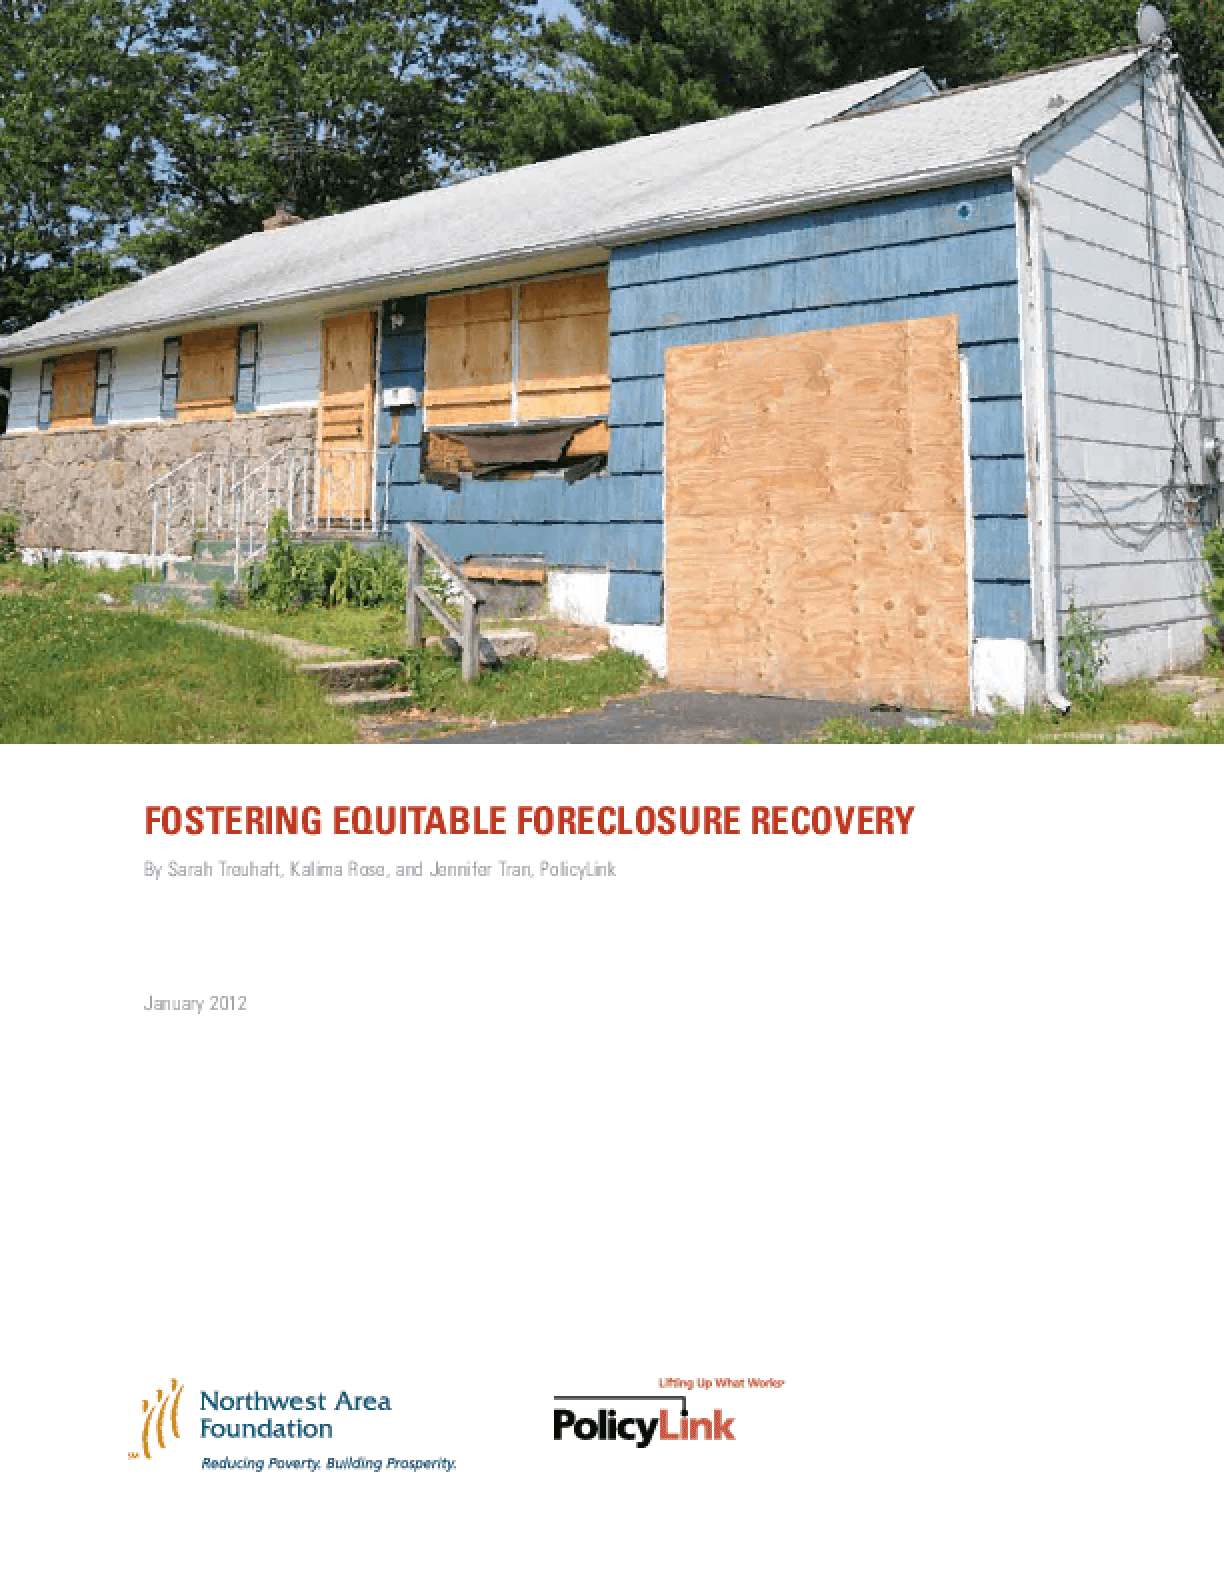 Fostering Equitable Foreclosure Recovery